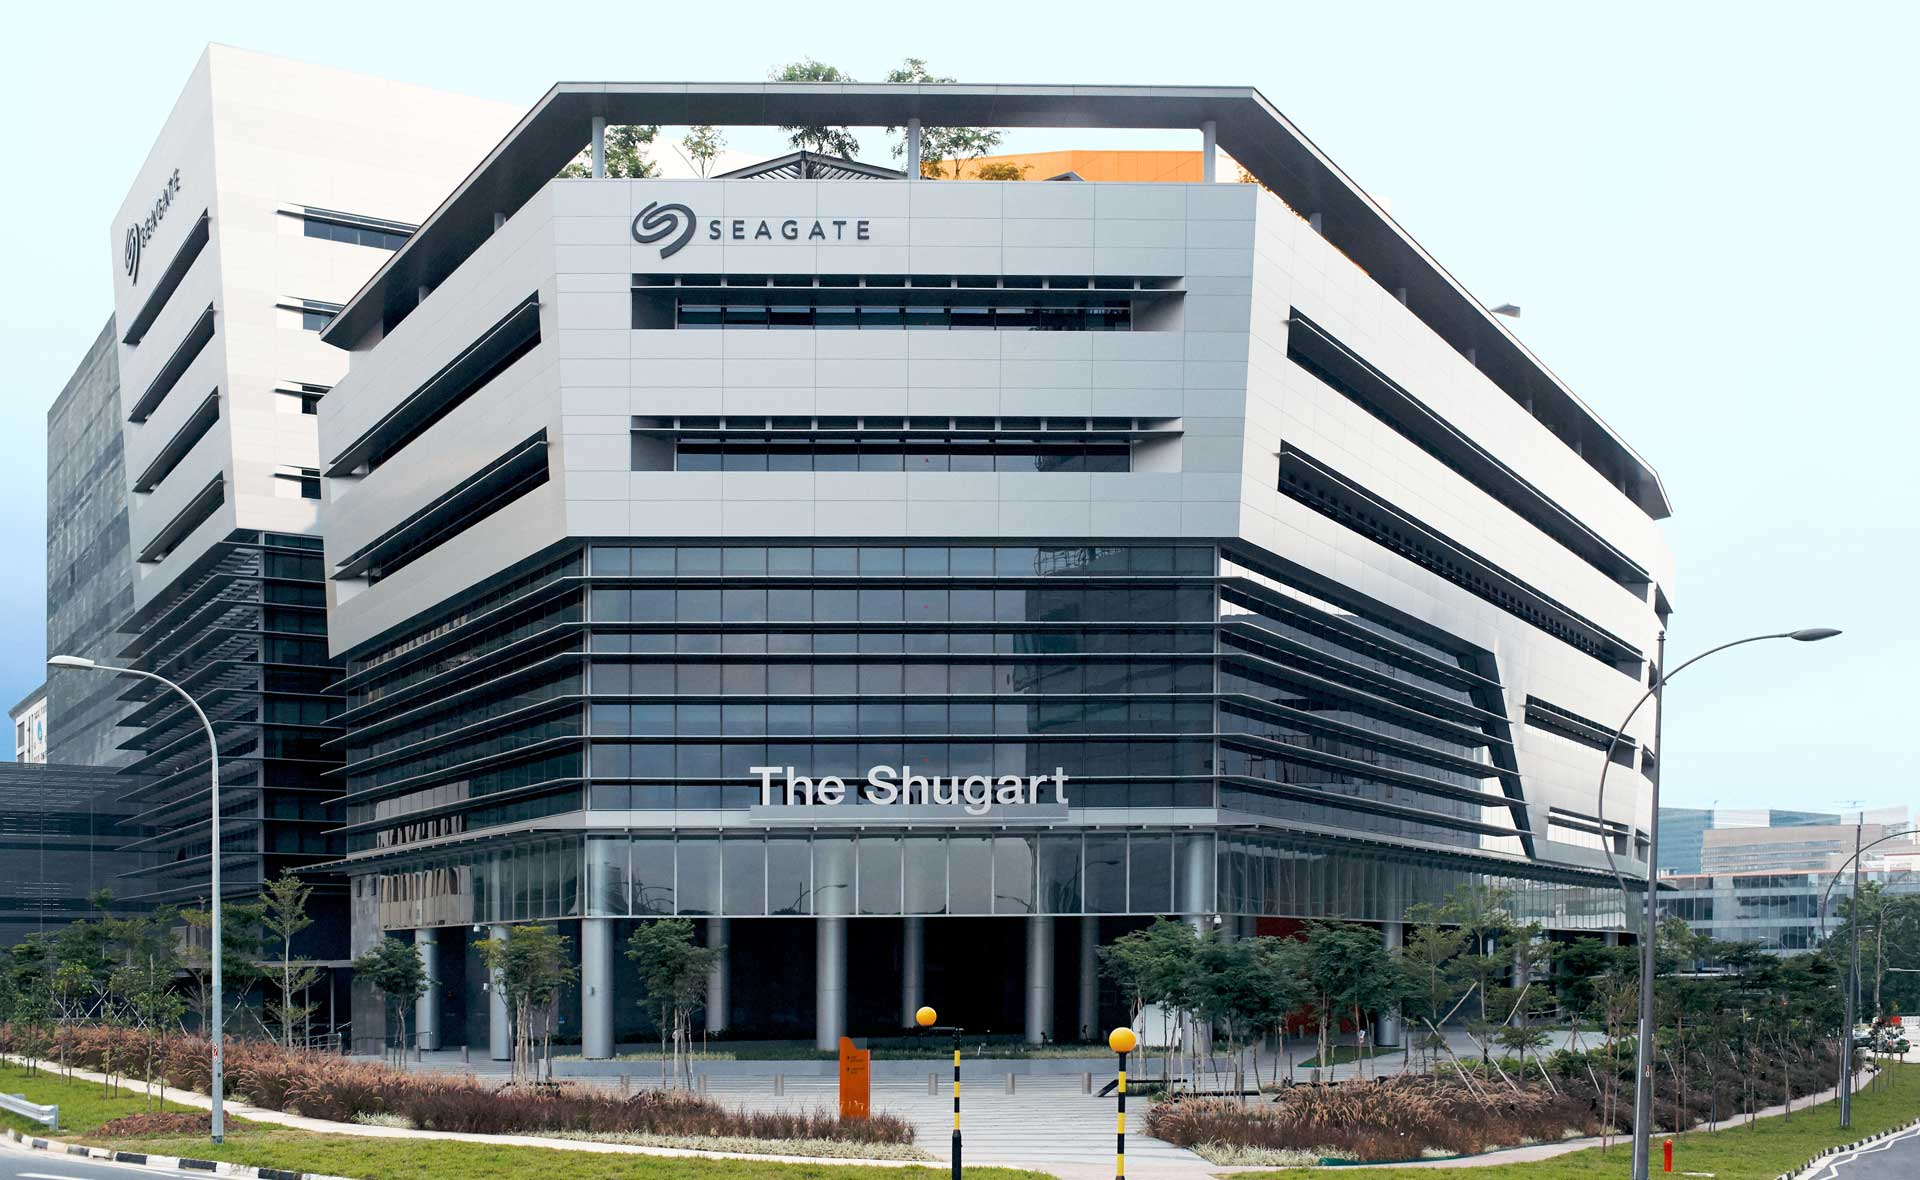 Seagate Singapore Design Center - The Shugart